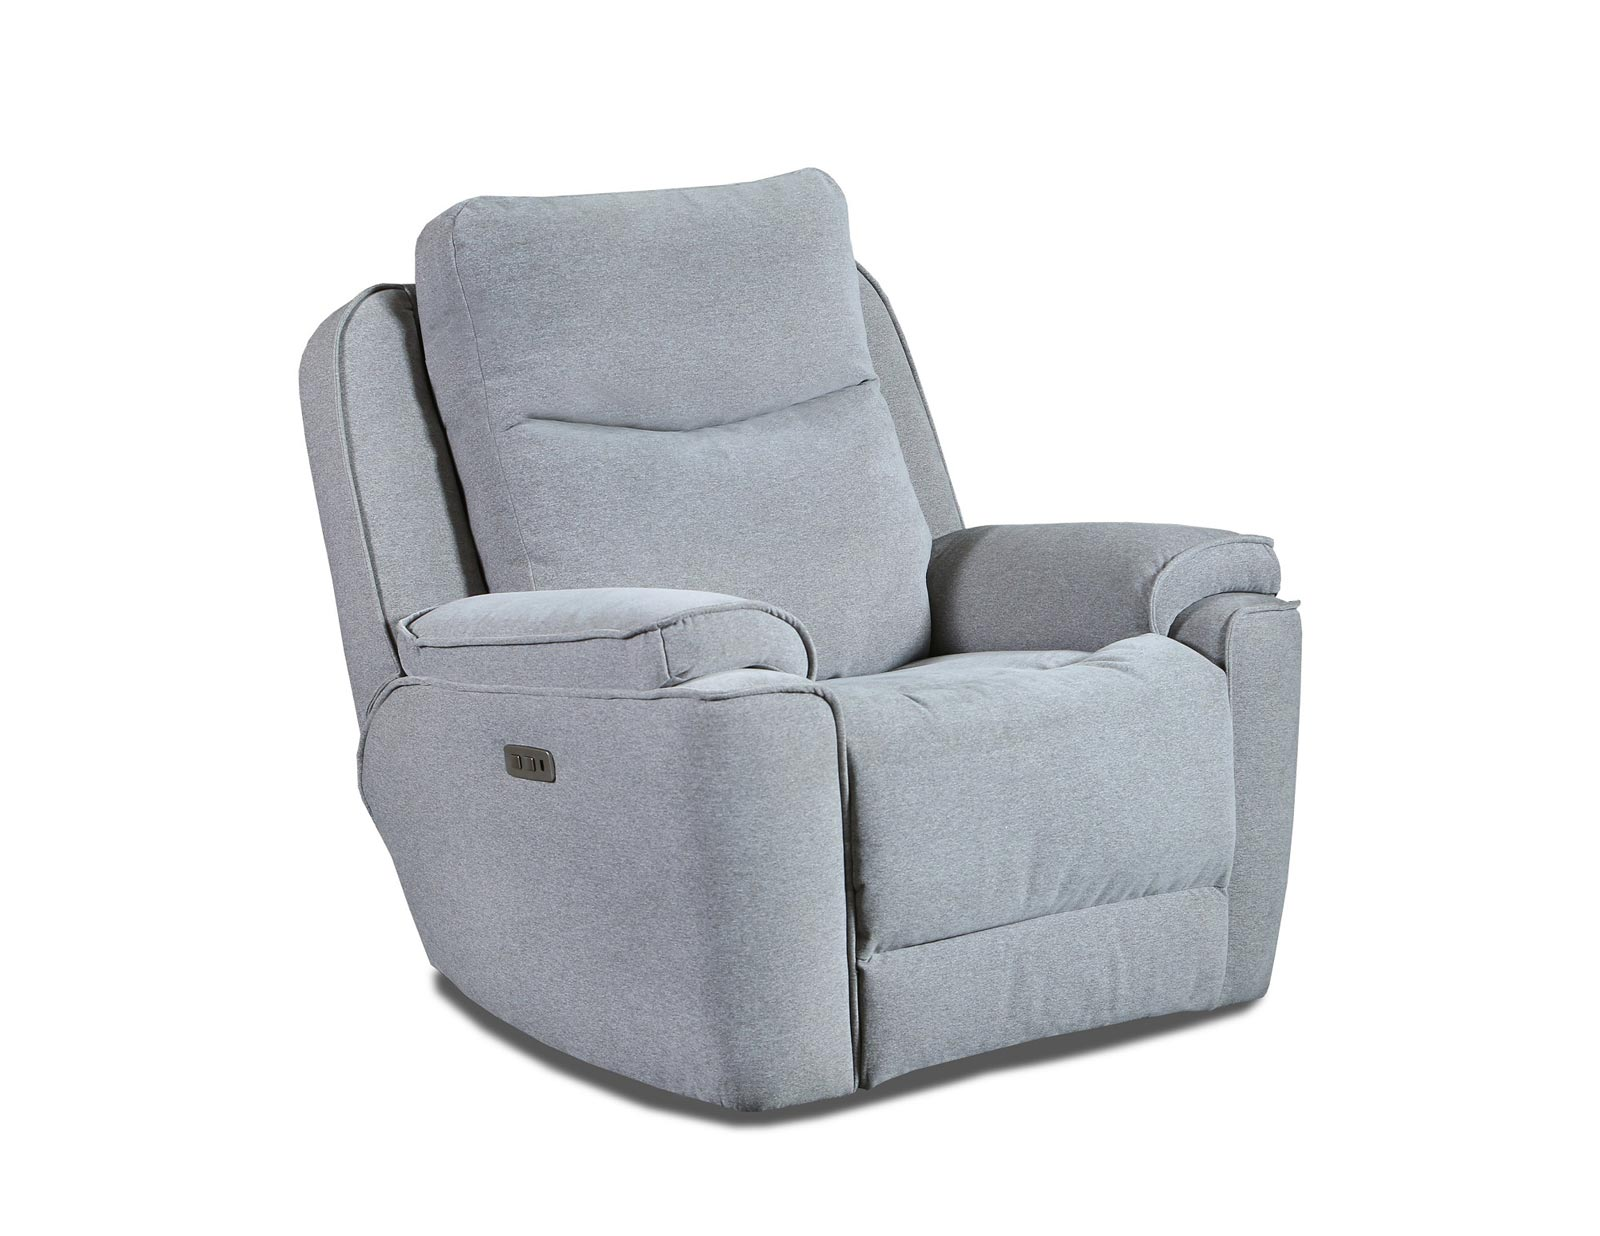 1736 Show Stopper Recliner Image